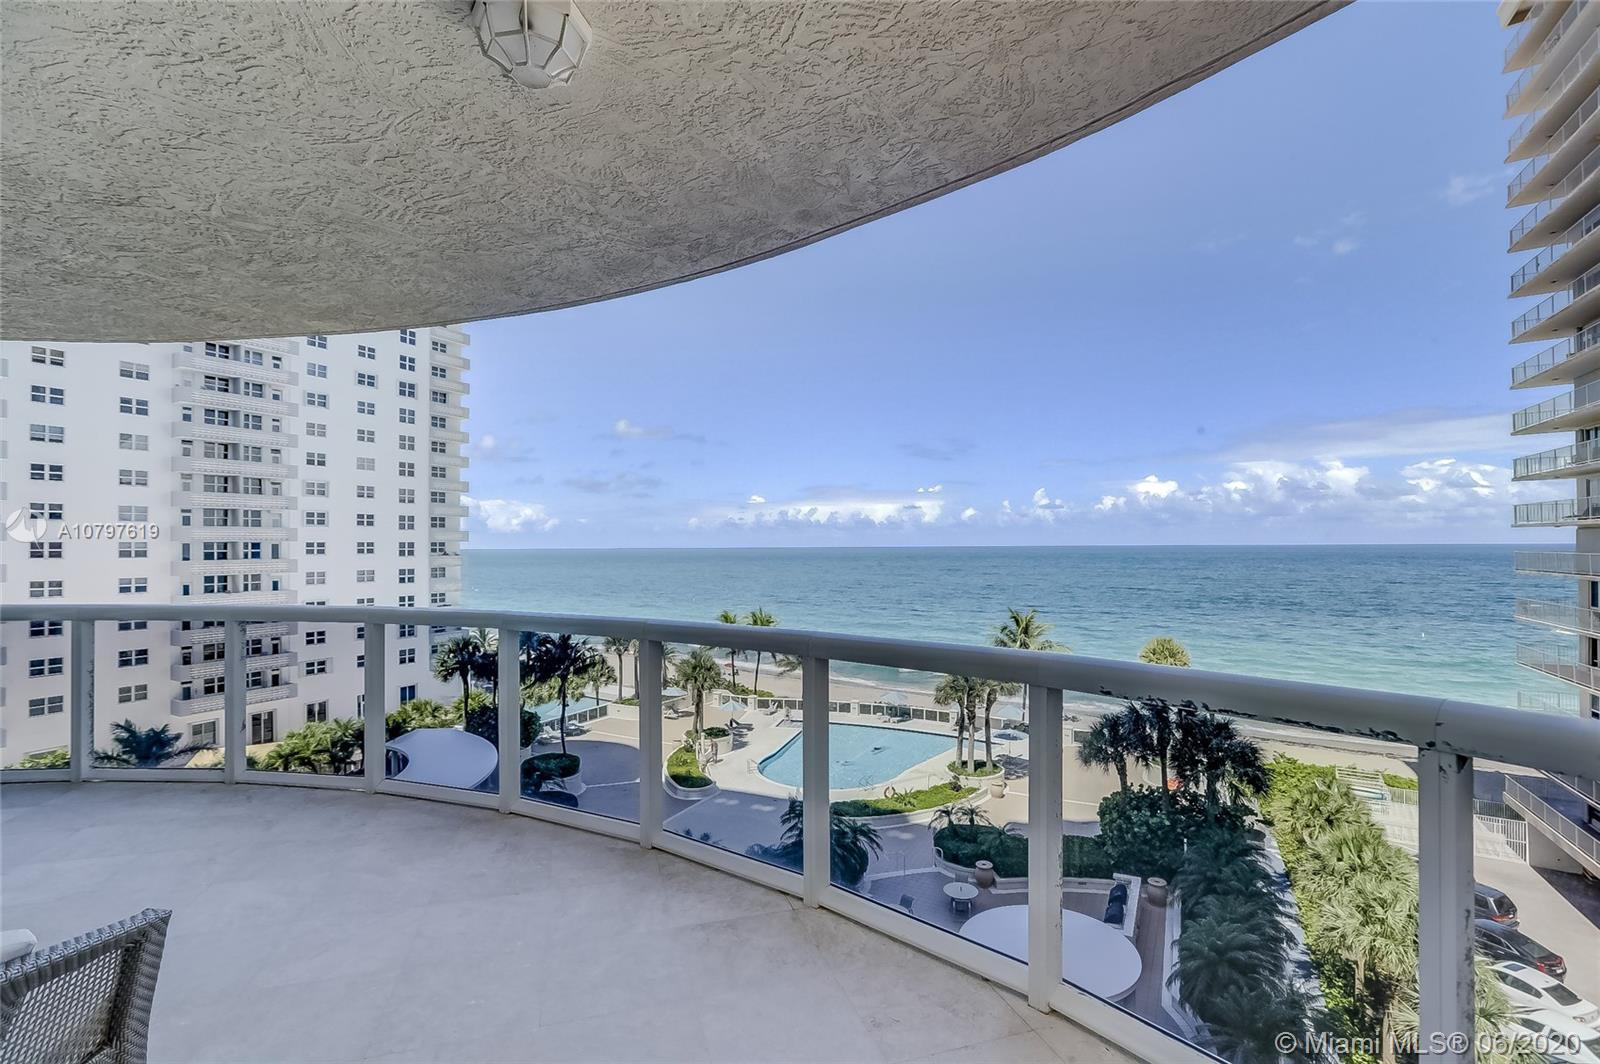 Amazing ocean front unit with direct ocean view in a luxury building. Unit has been completely remolded.  Brand new state of the art kitchen. New floors, New custom closets. New bathroom finishes. New Ac and water heater. Large balcony with direct ocean view. This unit needs nothing but a new owner. Move right in. Owner will consider OWNER FINANCING. Property cleaned and Vacant.